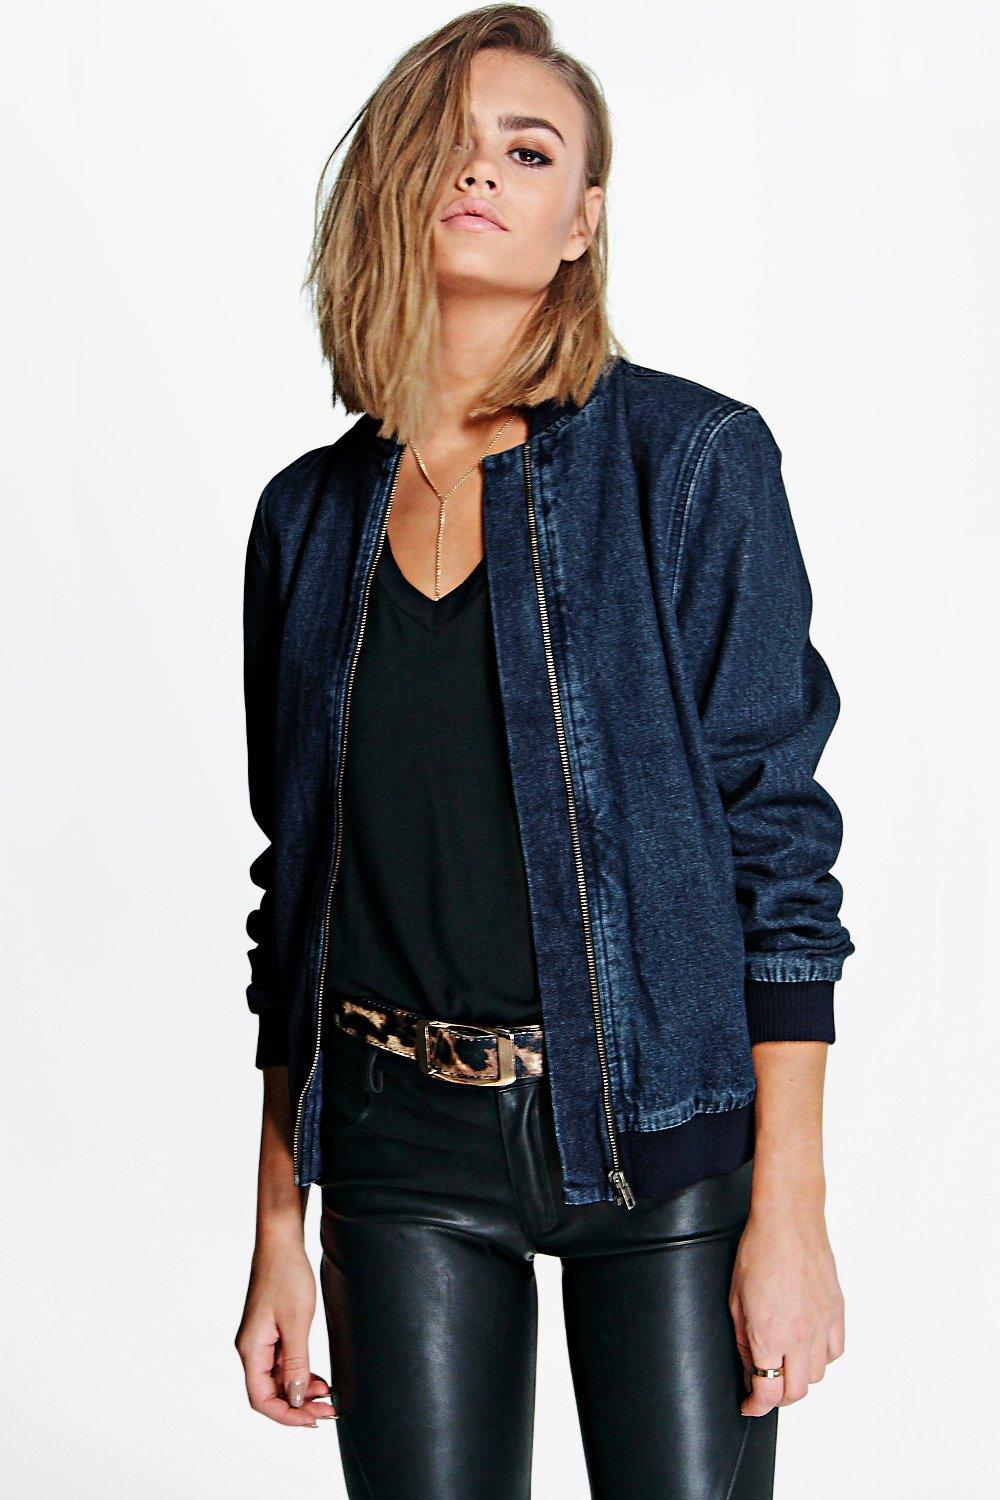 Lightweight and casual, the denim jackets are a staple that can be coordinated with almost every outfit. Or exude chic fashion with bombers and classic leather teaming with jeans or dresses. Our season's new range includes embroidered detailing and bold colours to sophisticated blazer jackets .